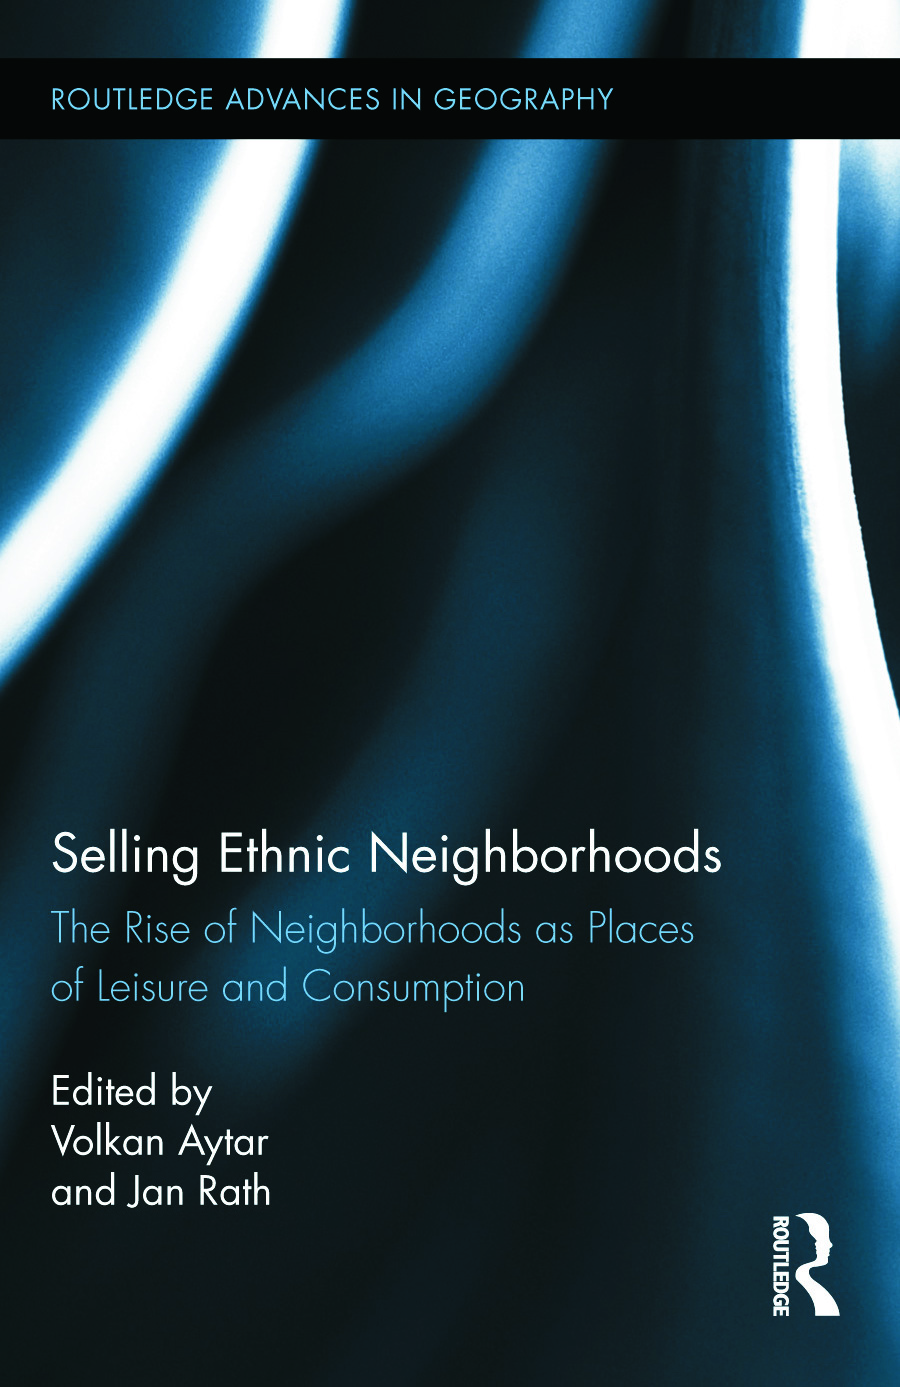 Selling Ethnic Neighborhoods: The Rise of Neighborhoods as Places of Leisure and Consumption book cover